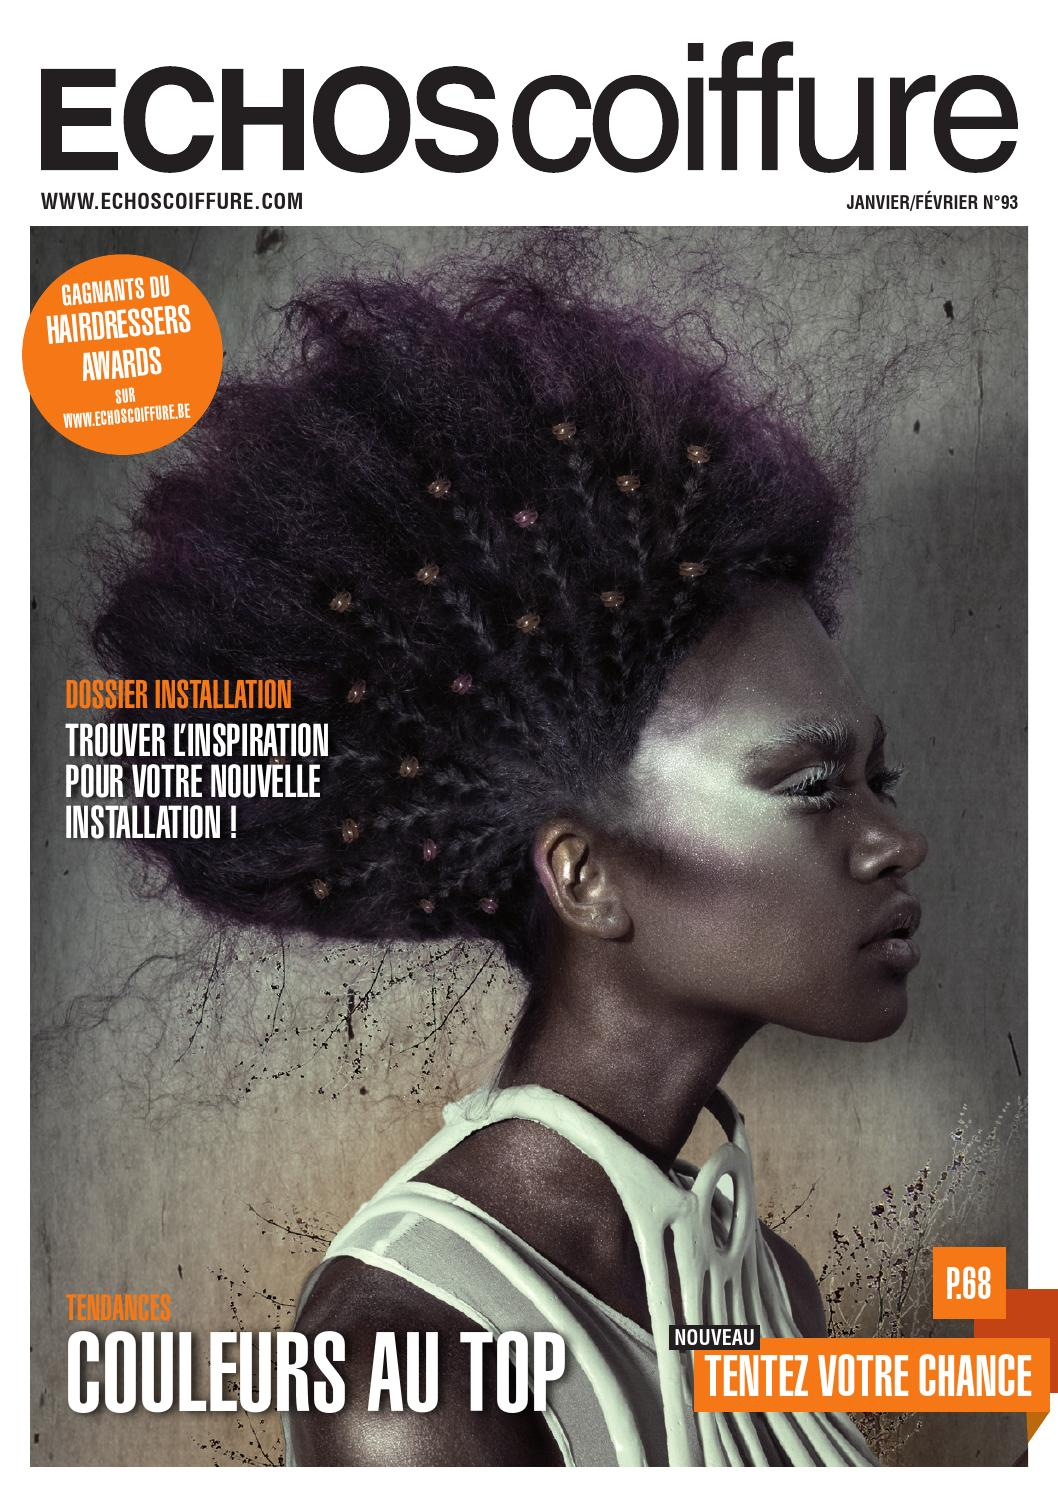 Echos coiffure n°83 fr by eurobest products   issuu